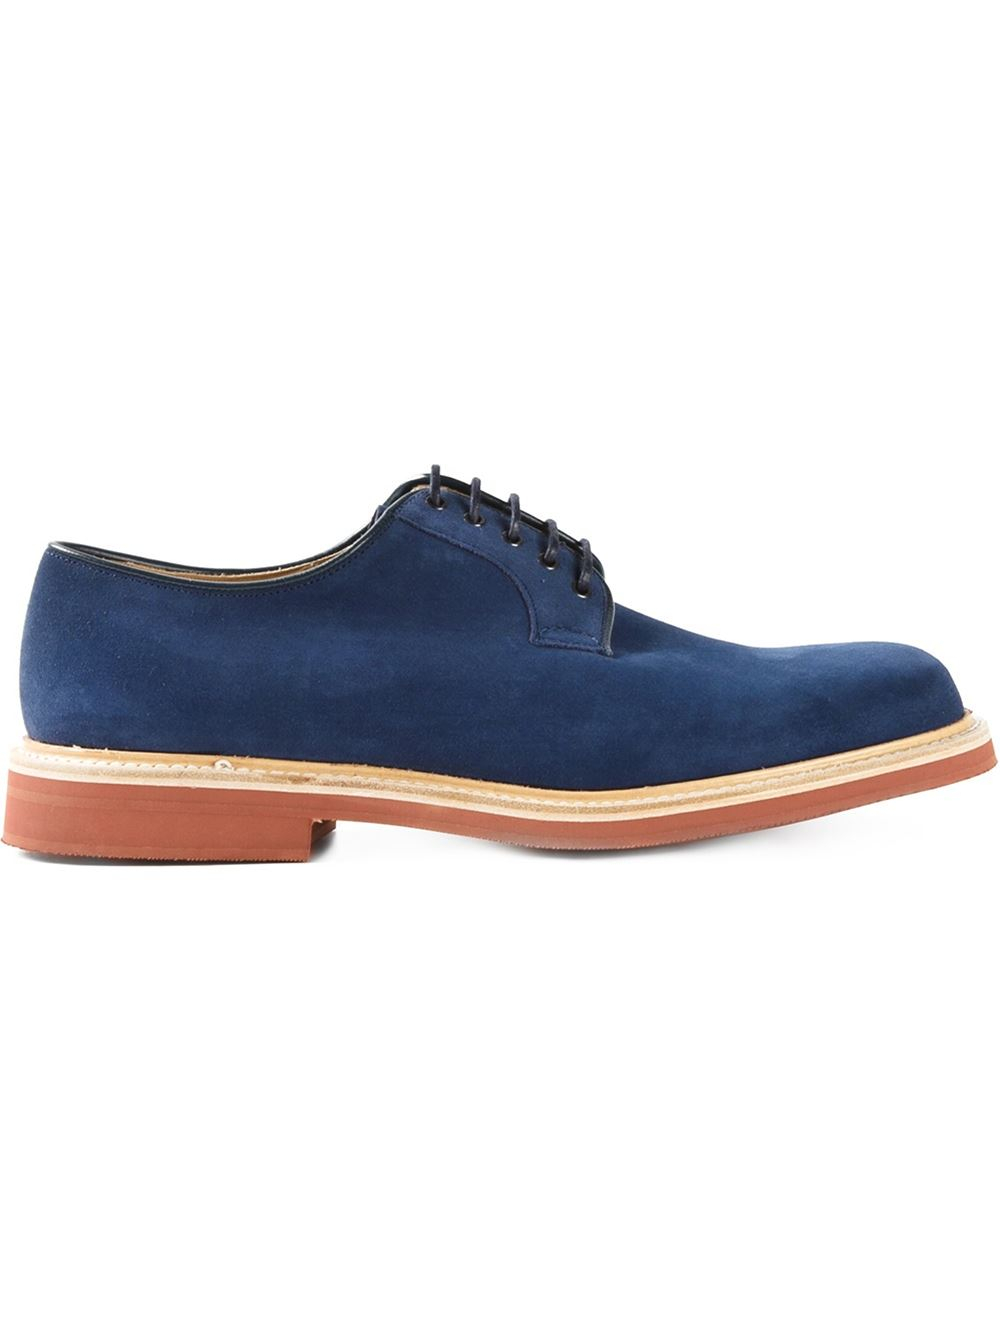 church s fulbeck lace up shoes in blue for lyst